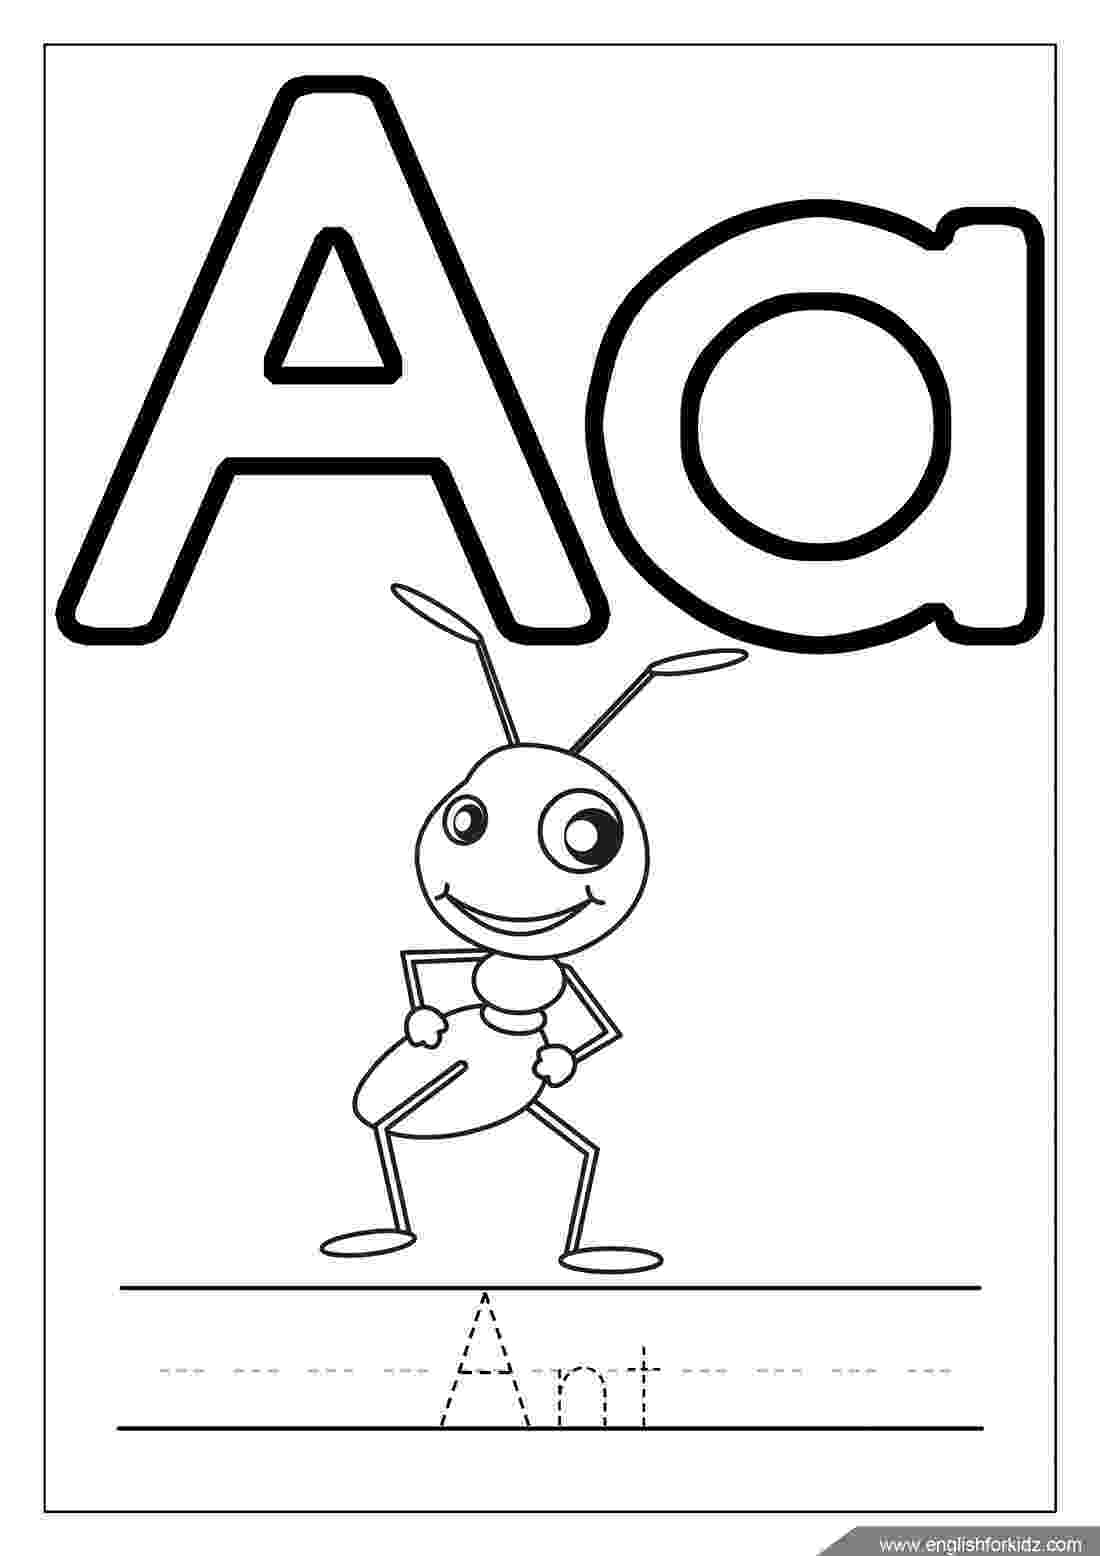 english alphabet coloring pages printable alphabet coloring pages letters a j coloring alphabet pages english